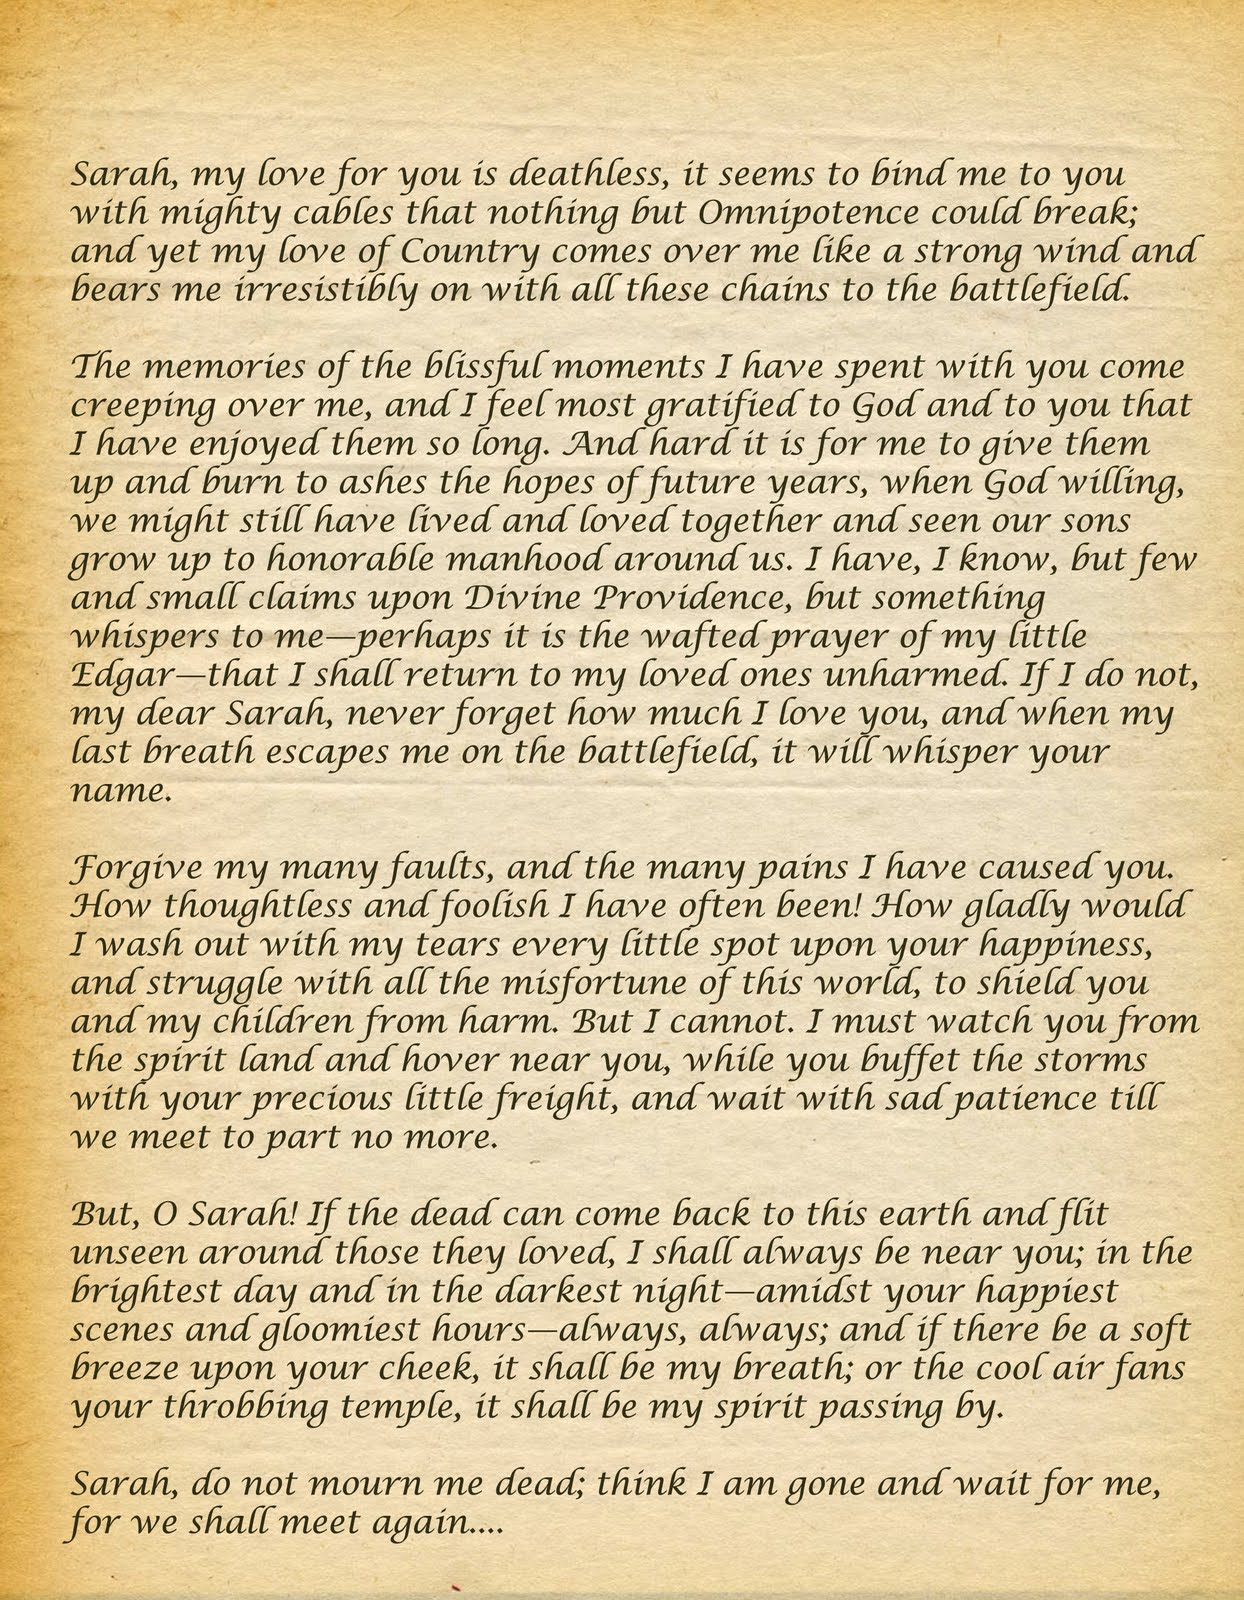 sullivan ballou letter Appendix b: sullivan ballou to sarah ballou, july 14, 1861 july 14, 1861 camp clark, washington my very dear sarah: the indications are very strong that we shall move in a few days—perhaps tomorrow.